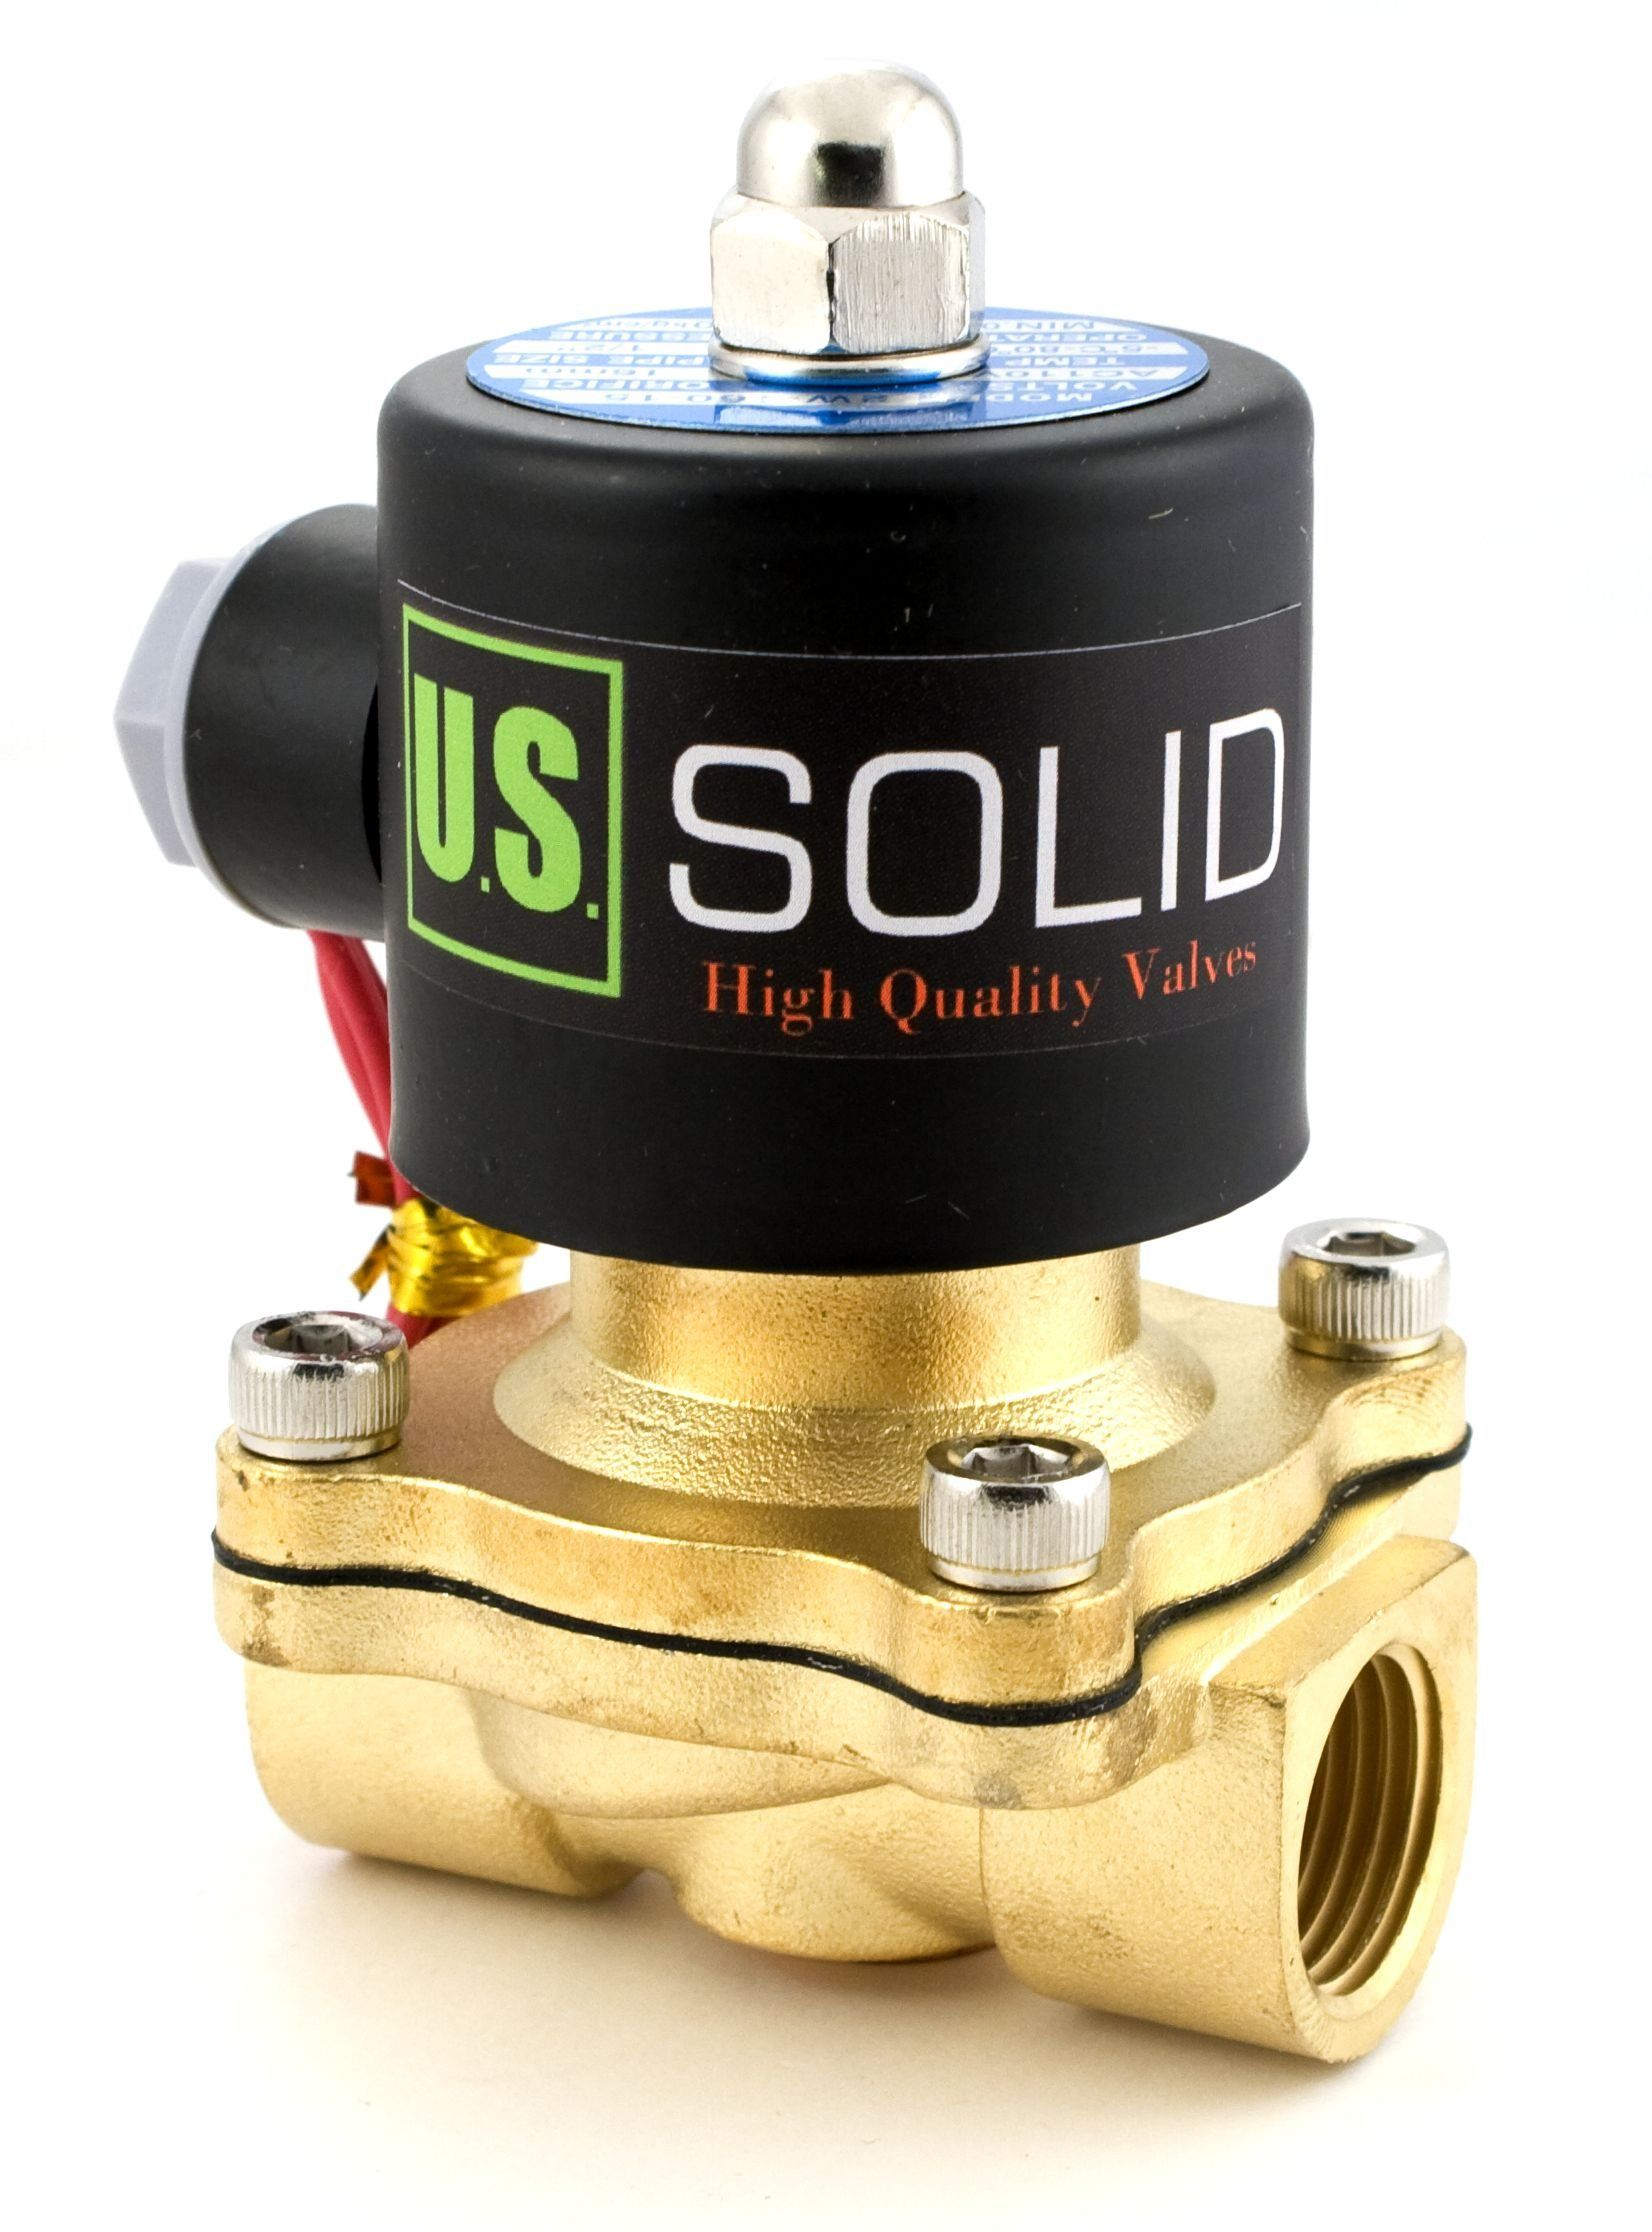 1 2 Brass Electric Solenoid Valve 24vac Air Water Nbr Normally Closed Ad Valve Sponsored Solenoid Brass Electric Valve Electricity Gas